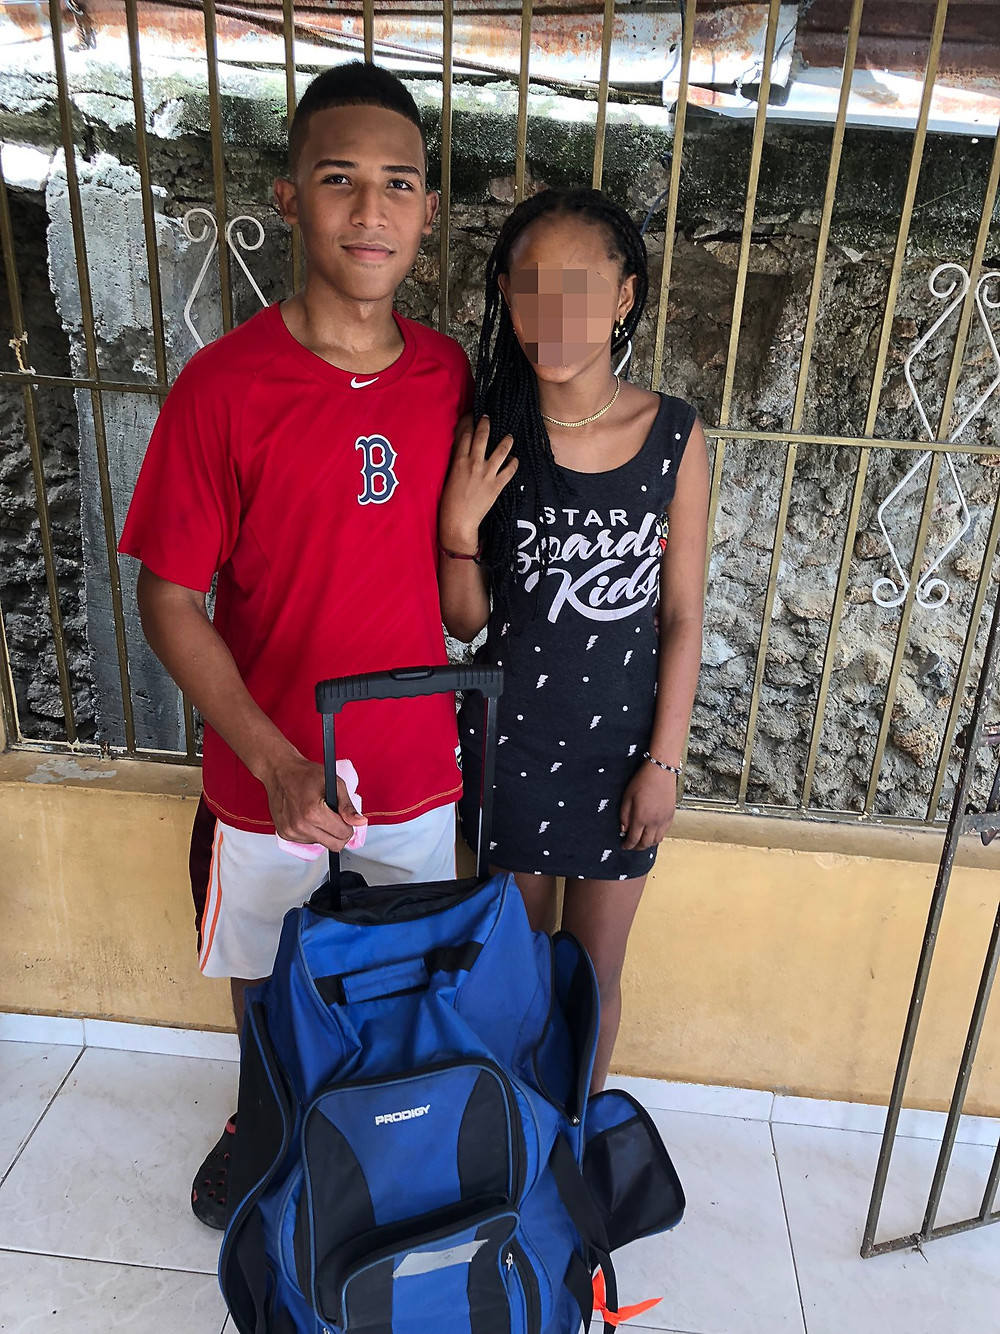 Reynaldo and *Sara, who was rescued in the Dominican Republic early last year.